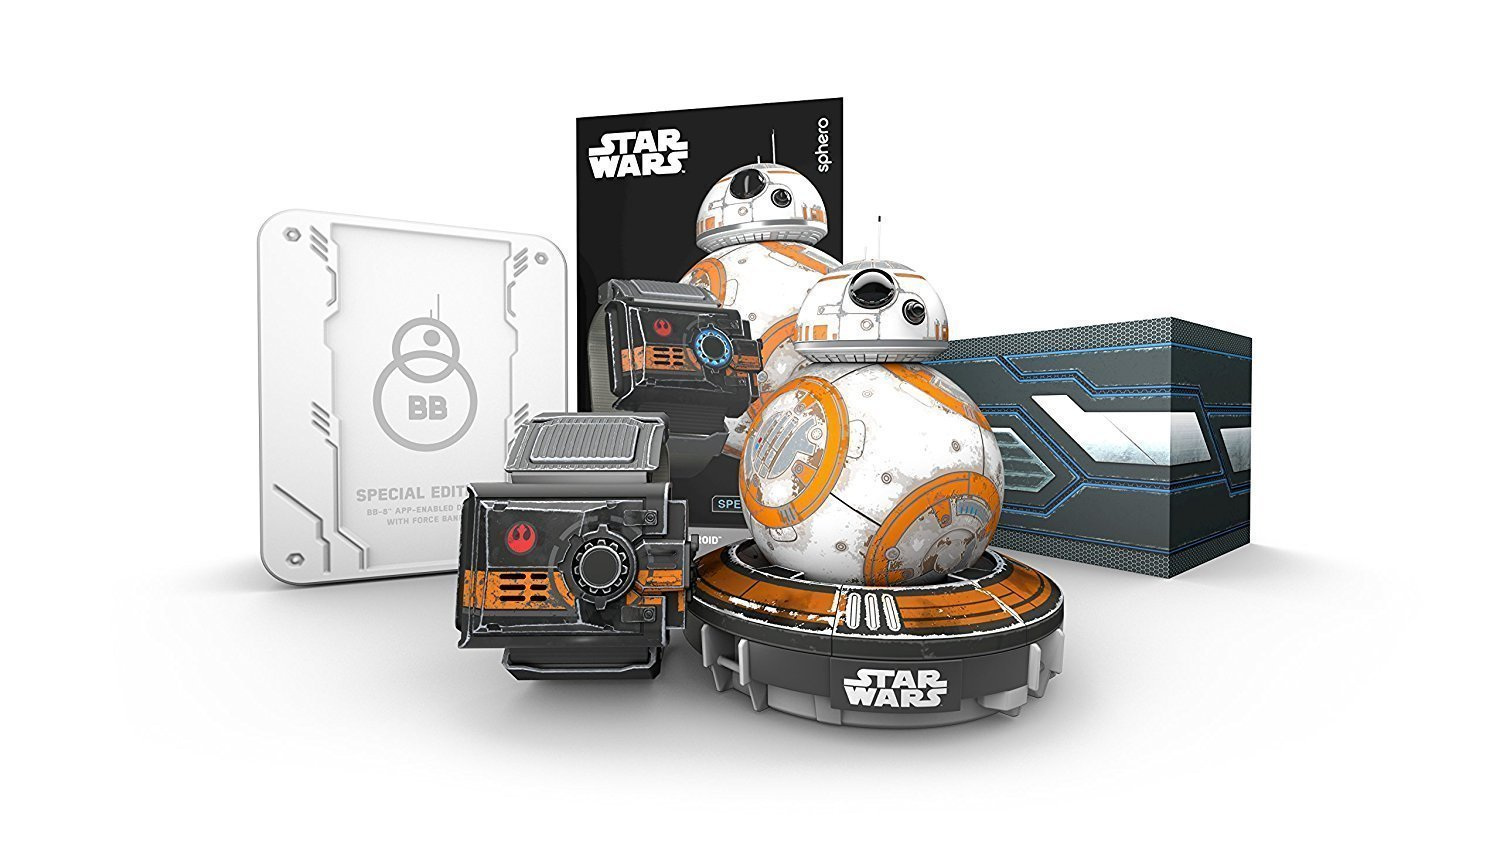 Sphero Special Edition Battle-Worn BB-8 with Force Band (Renewed) by Sphero (Image #3)